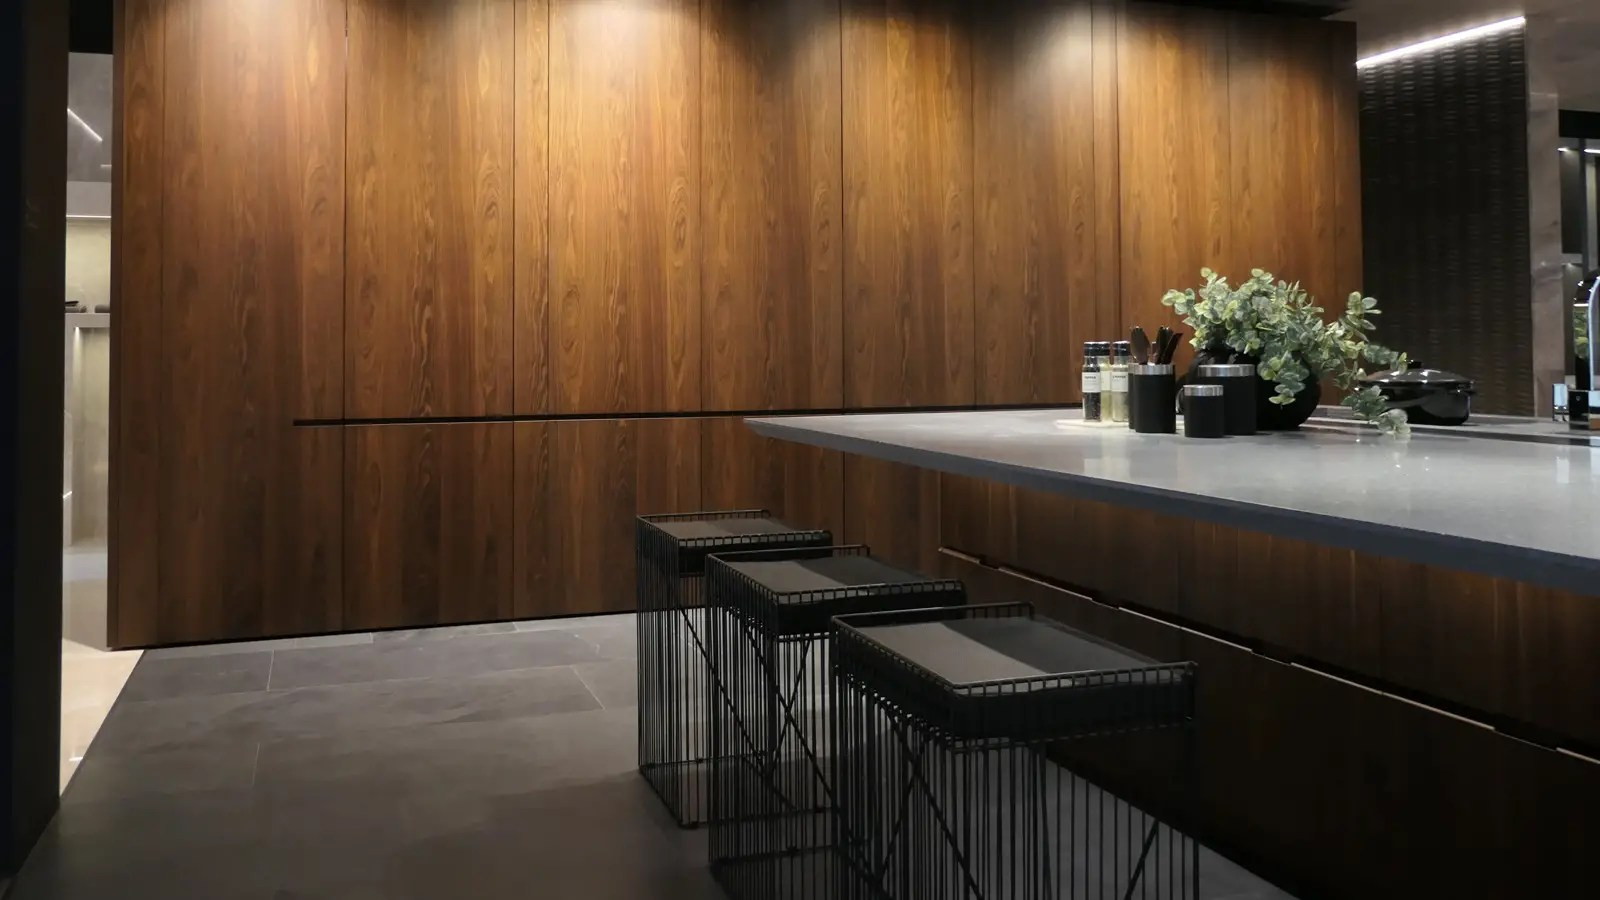 Gama Decor Gamadecor Transfers Its New Bathrooms And Kitchens To Cersaie